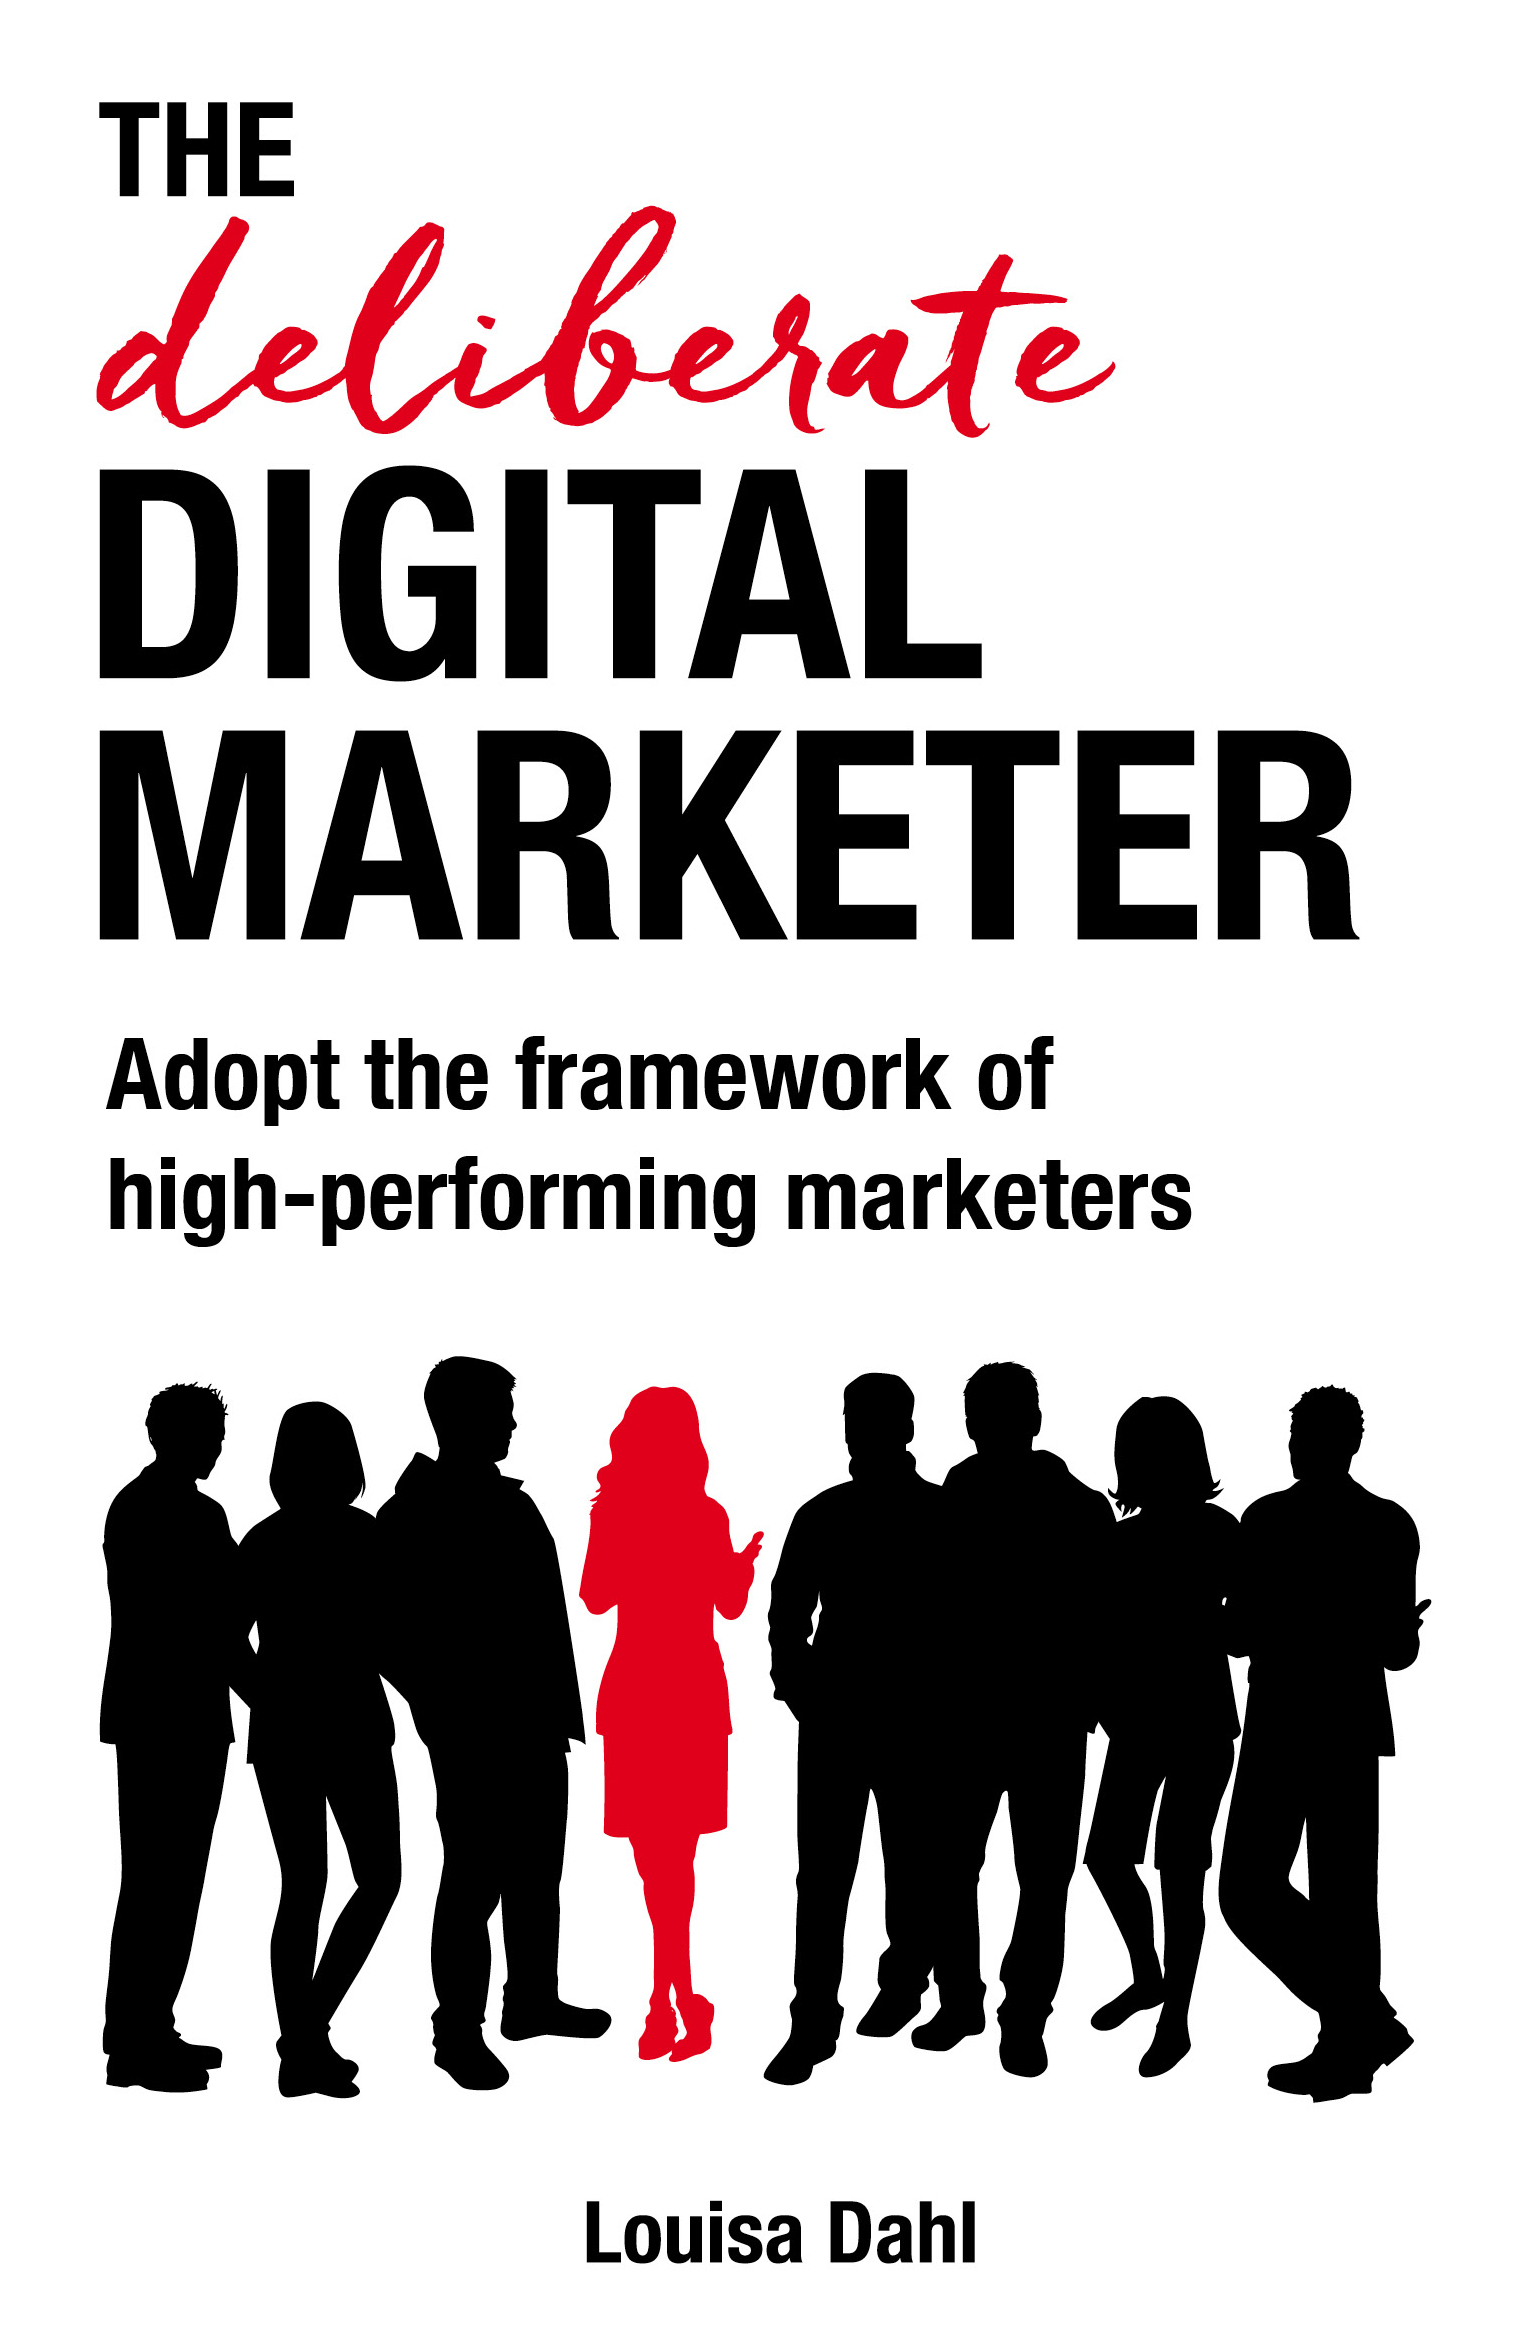 The Deliberate Digital Marketer